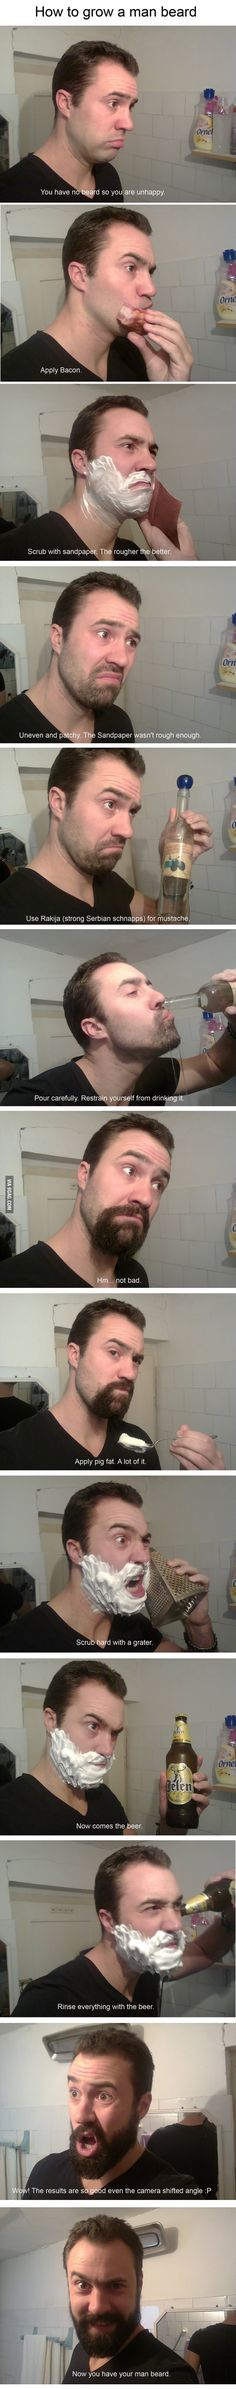 How to faster grow mans beard!! Ahhh Serbian schnapps!!